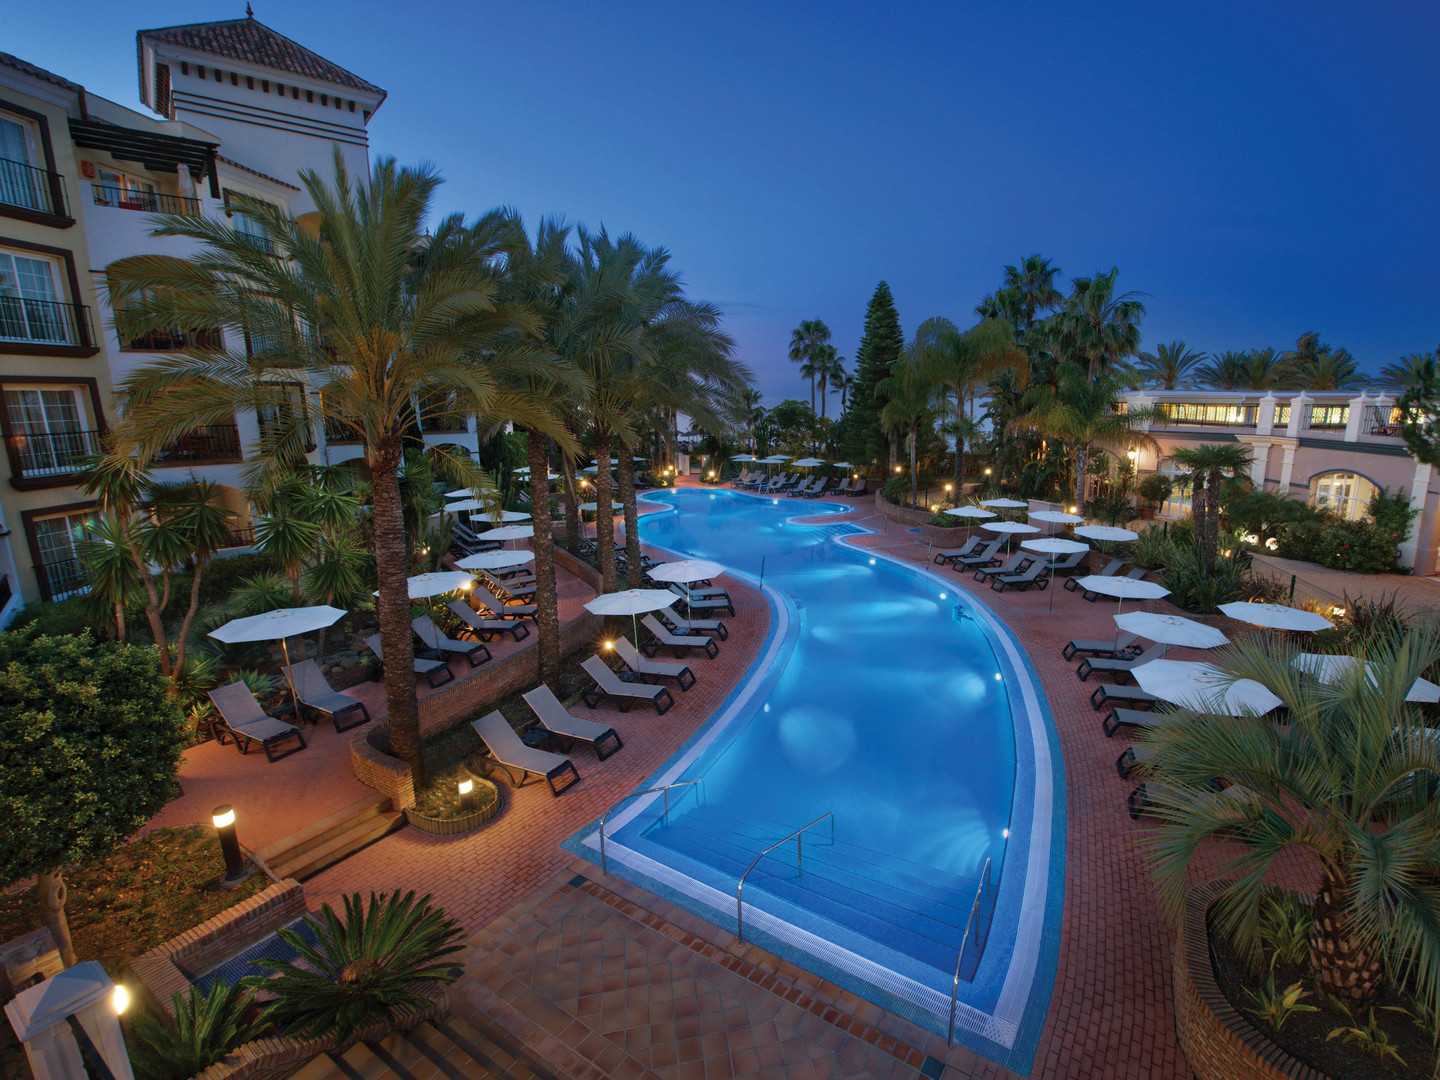 Resort Overview | Marriott's Playa Andaluza on map of irun spain, map of maspalomas spain, map of gava spain, map of toledo spain, map of spain major cities, map of santillana spain, map of ribera del duero spain, map of la manga spain, map of nerja spain, large map of spain, map of spain with regions, map of priorat spain, map of santander spain, map of sanlucar spain, map of ciudad real spain, map of rioja region spain, map of torrejon spain, map of palamos spain, map of cadiz spain, map of porto spain,